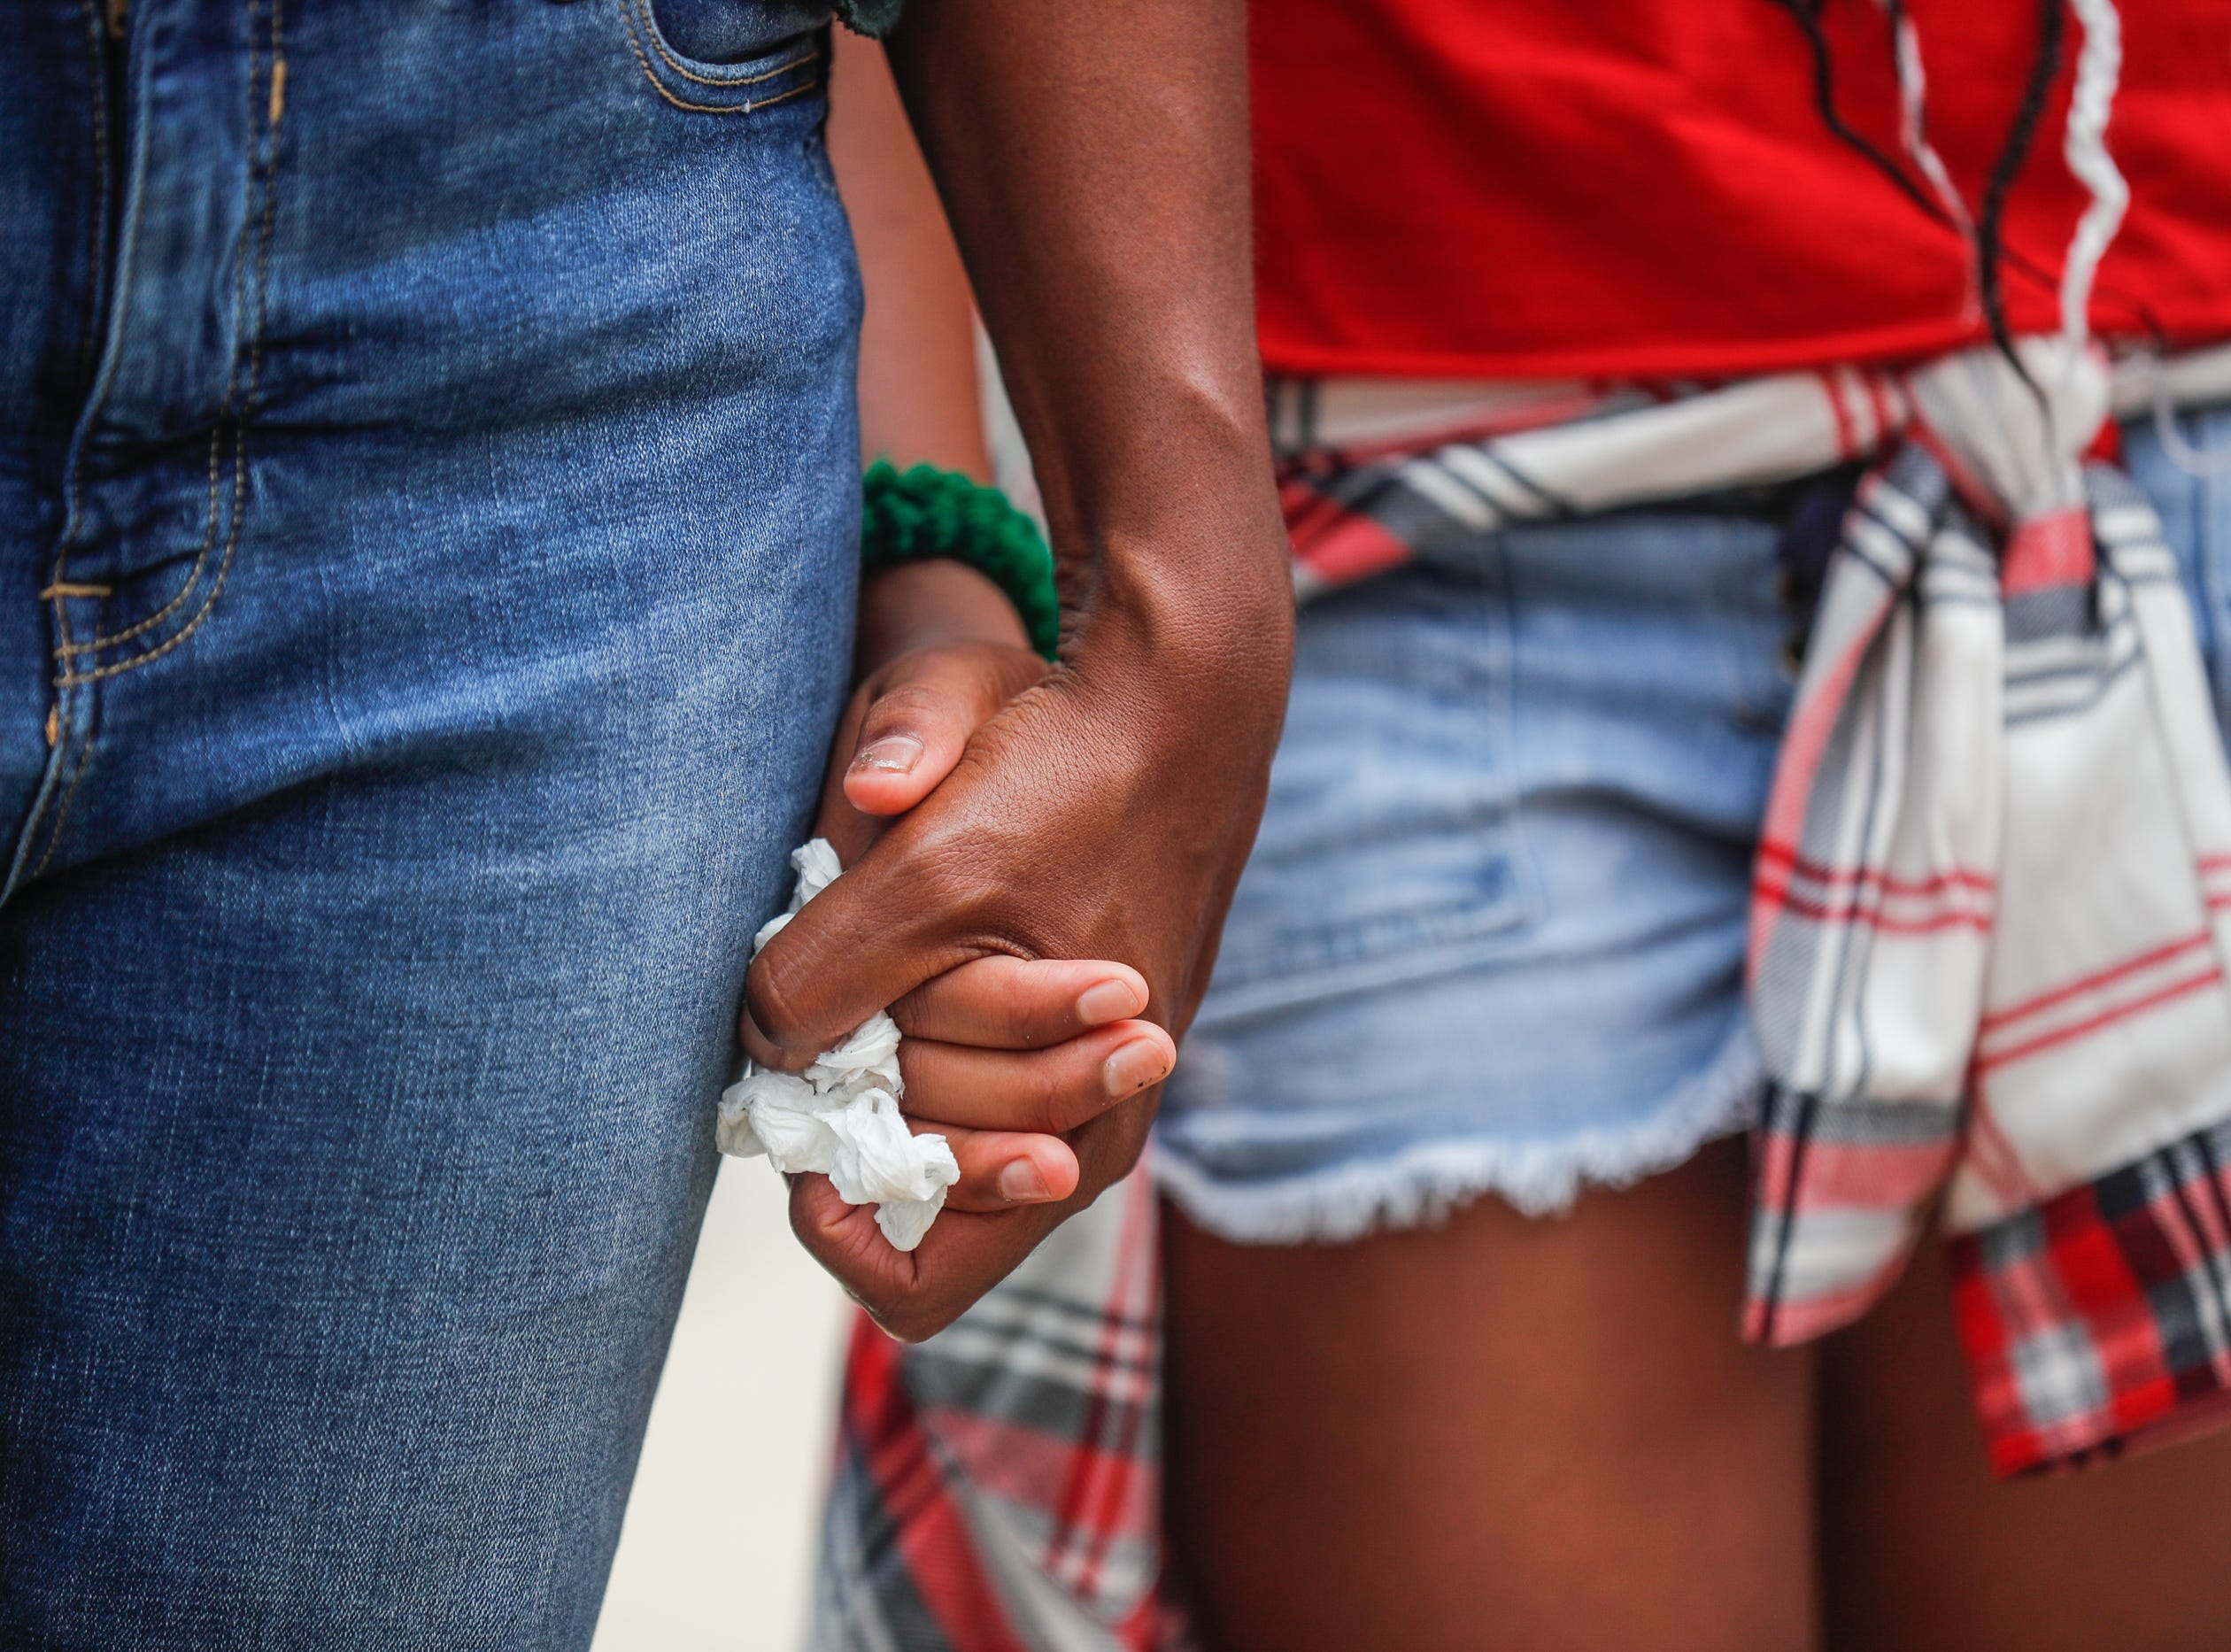 Supporters of 'We Live'' hold hands in prayer during the second annual Peace Walk and Community Day to end youth violence at Washington Park on Saturday, Aug. 11, 2018. 'We Live,' which stands for 'Linked To Intercept Violence' was started by students from Warren Central High School in Indianapolis.